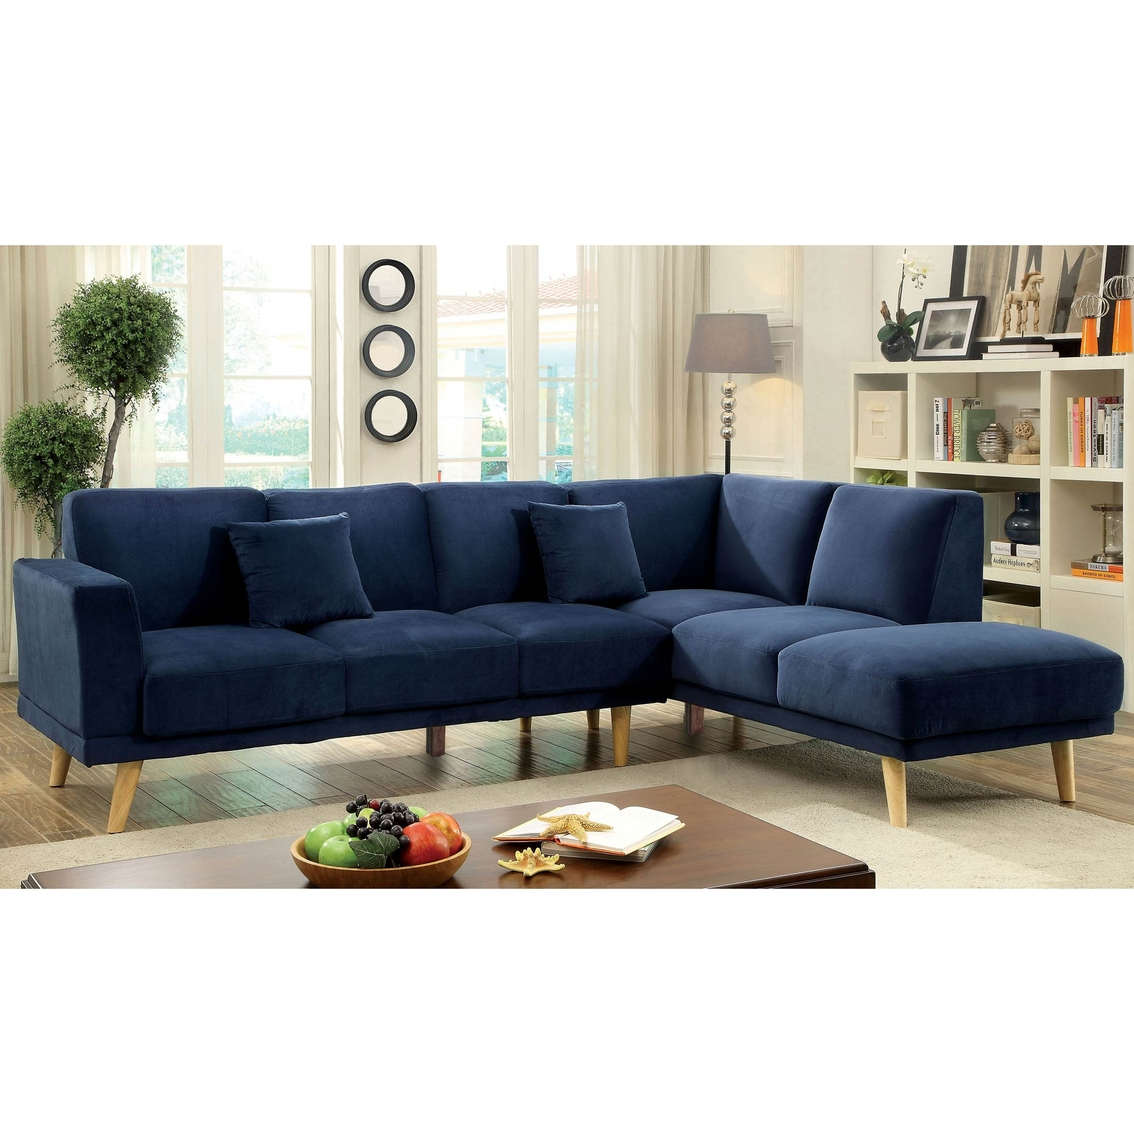 Furniture Of America Hagen Sectional Sofas Couches Home Appliances Shop The Exchange